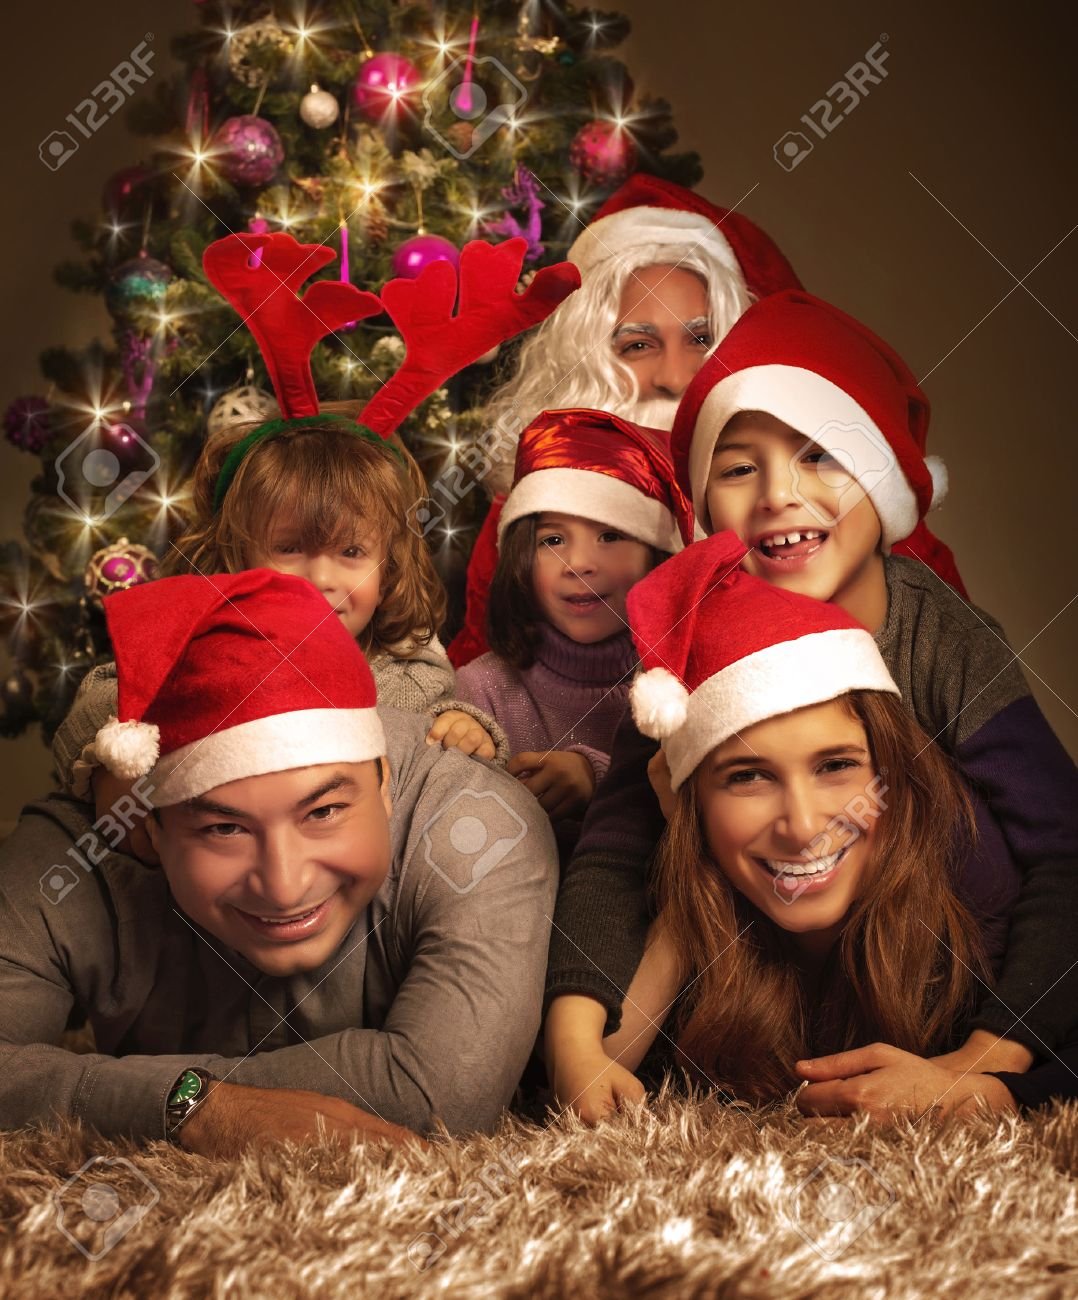 Family Christmas Photos Family Christmas Party Images Stock Pictures Royalty Free